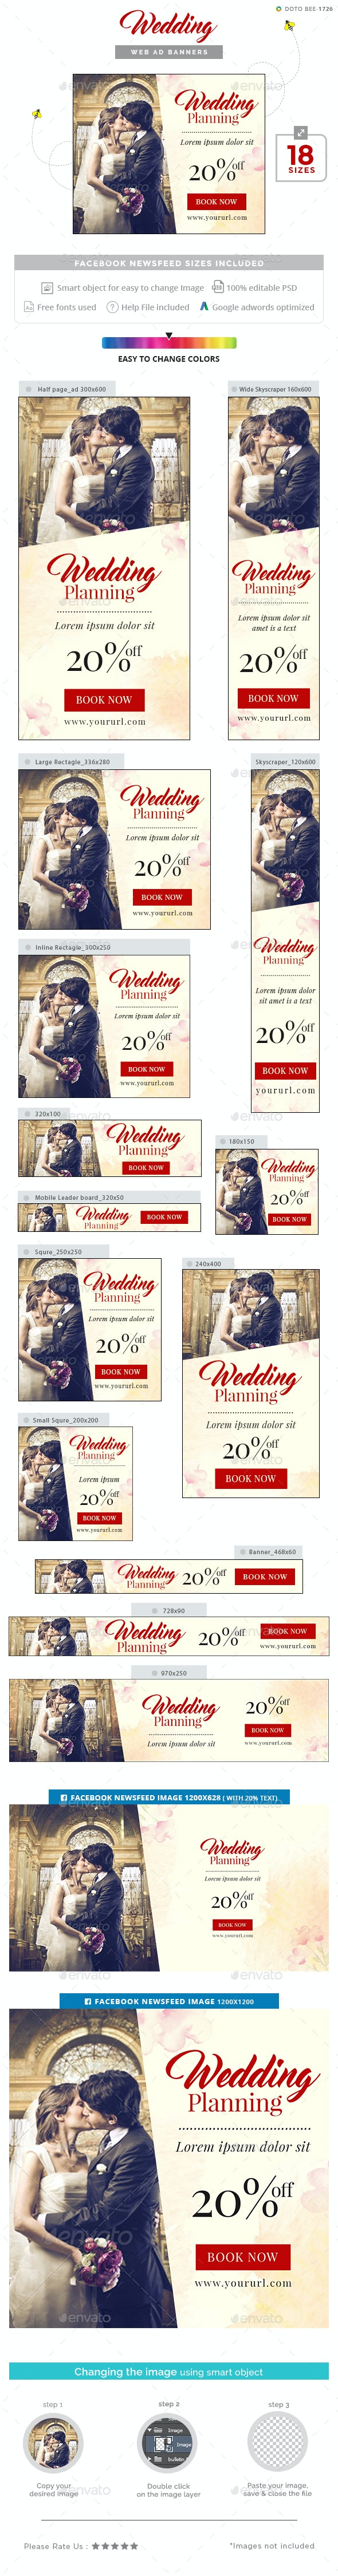 Wedding Banners - Banners & Ads Web Elements